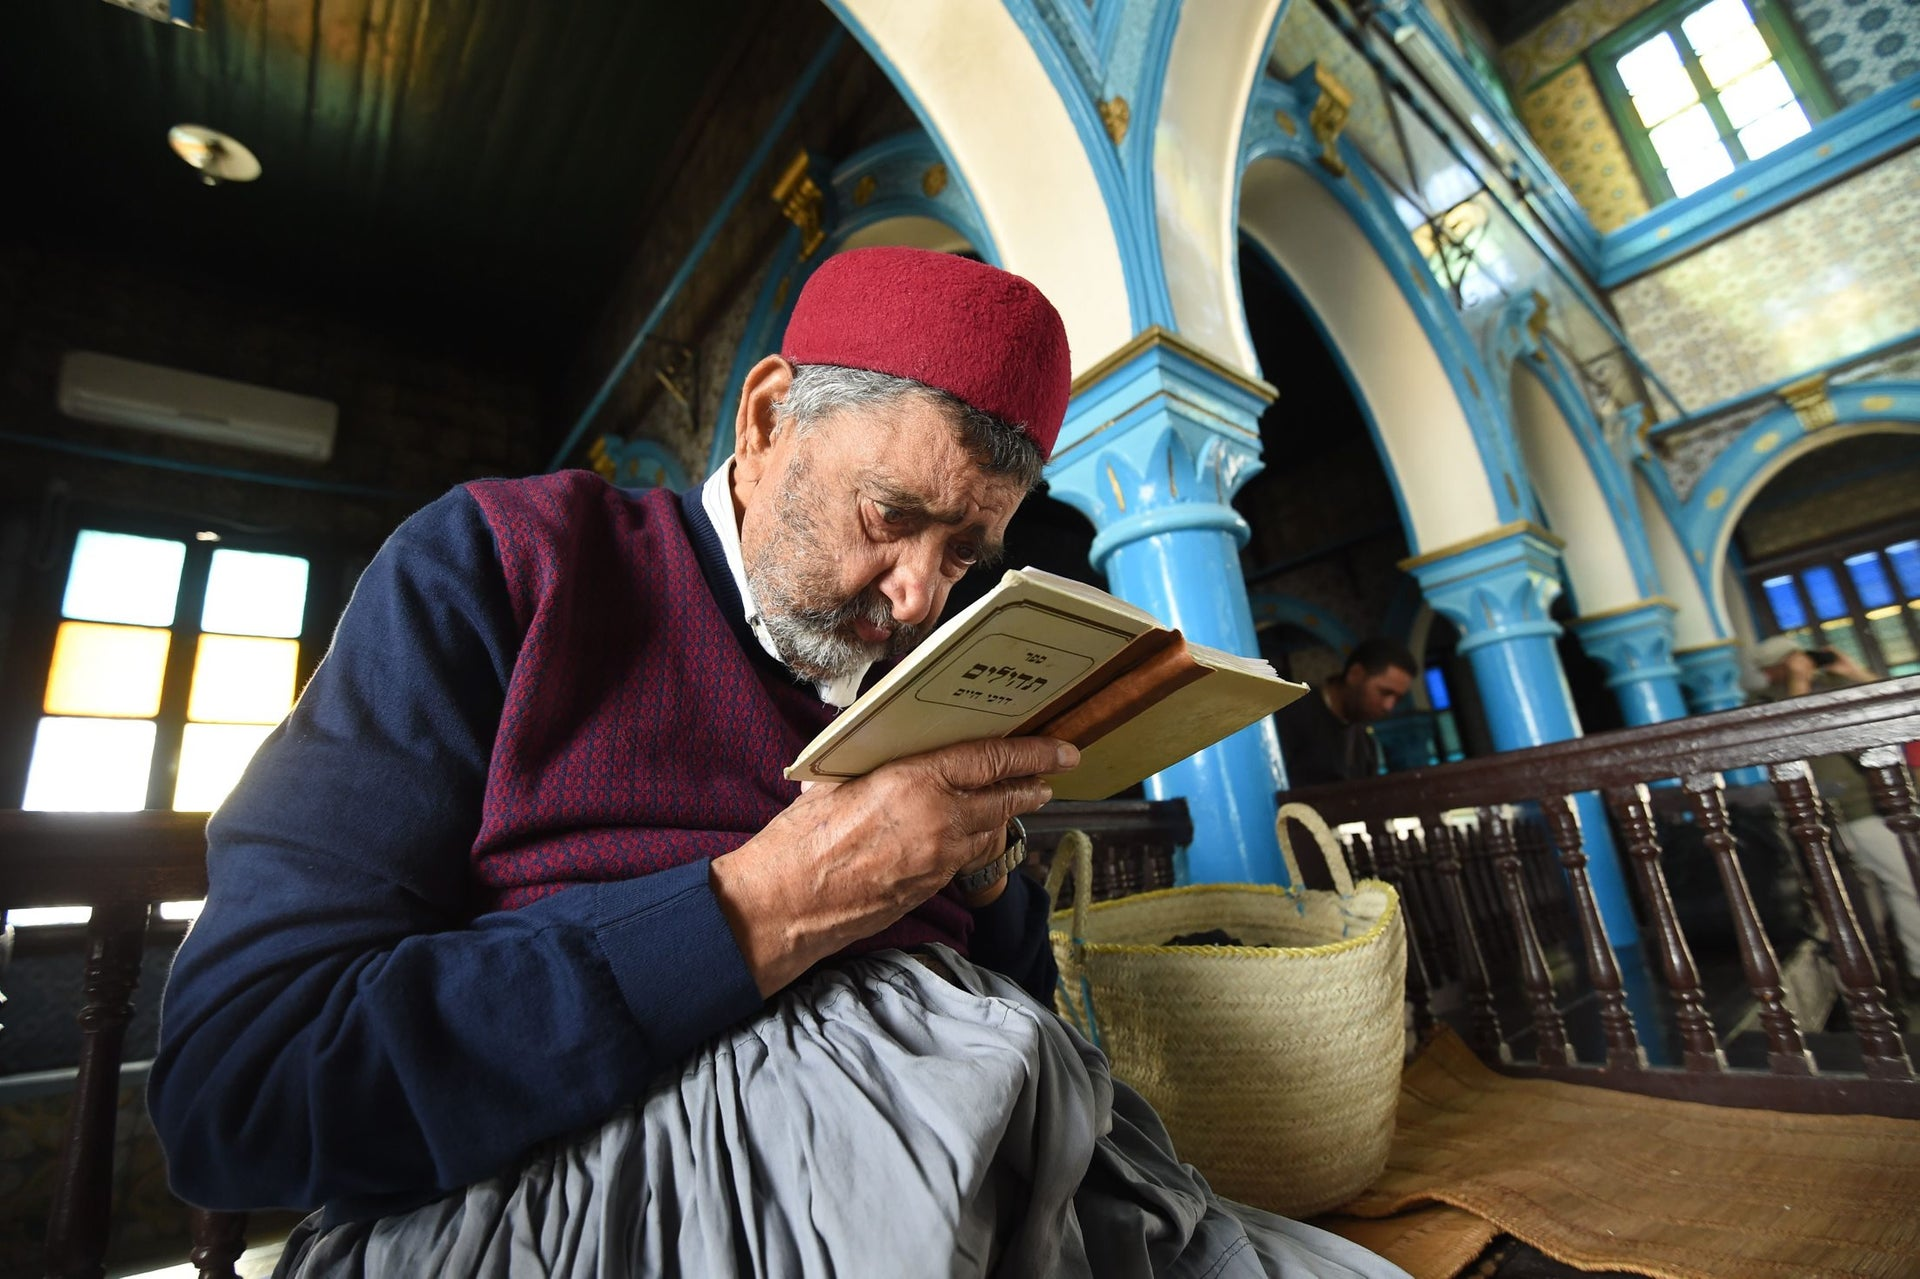 Tunisian Rabbi Attoughi reads the Torah, Judaism's most important text, at the Ghriba synagogue in the Tunisian resort island of Djerba during the annual Jewish pilgrimage on May 25, 2016.